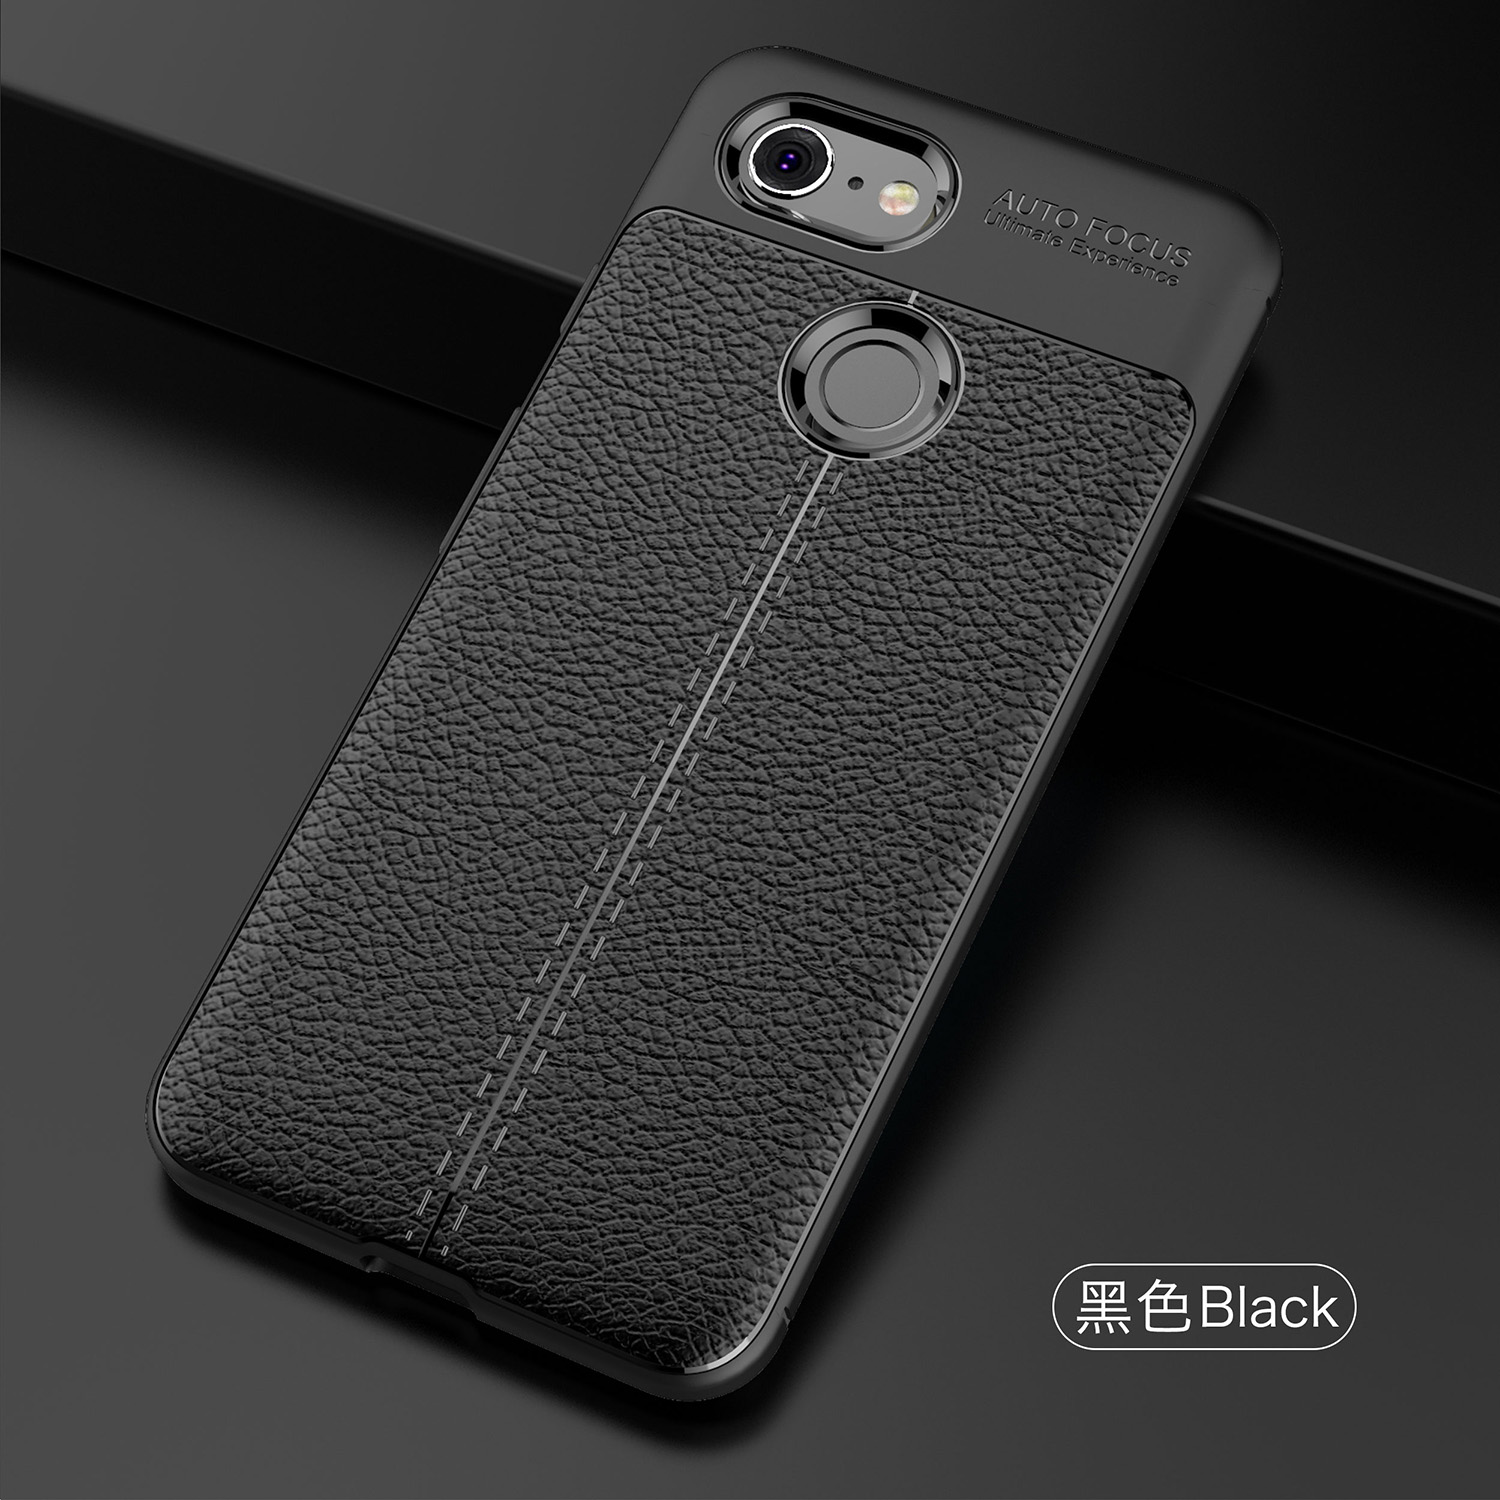 Soft TPU Case For Google Pixel 3 Case Leather Texture Silicone Phone Cover For Google Pixel 3 Business Coque Pixel3 5.4